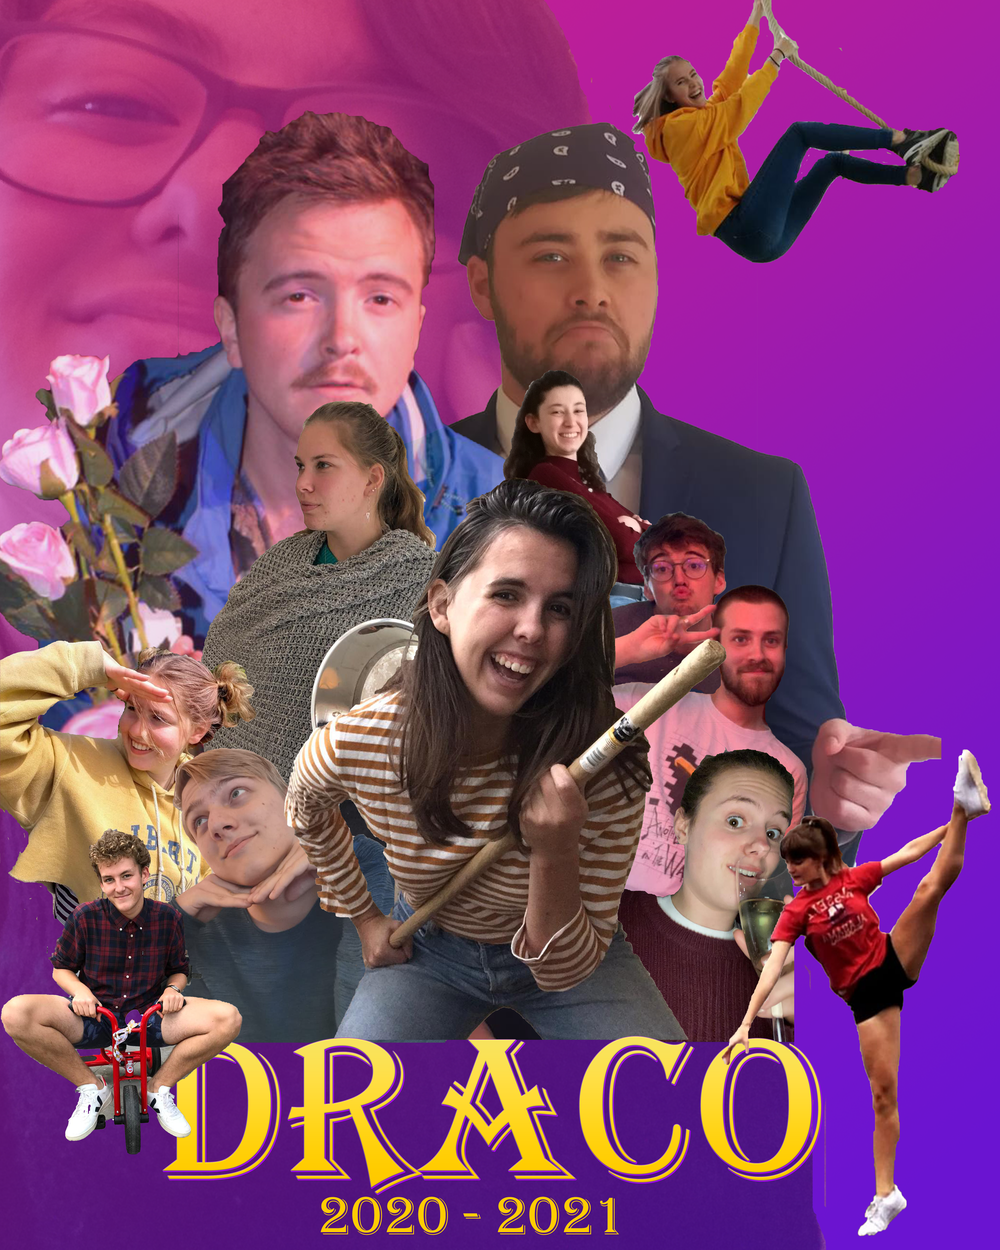 Draco_poster_3.png